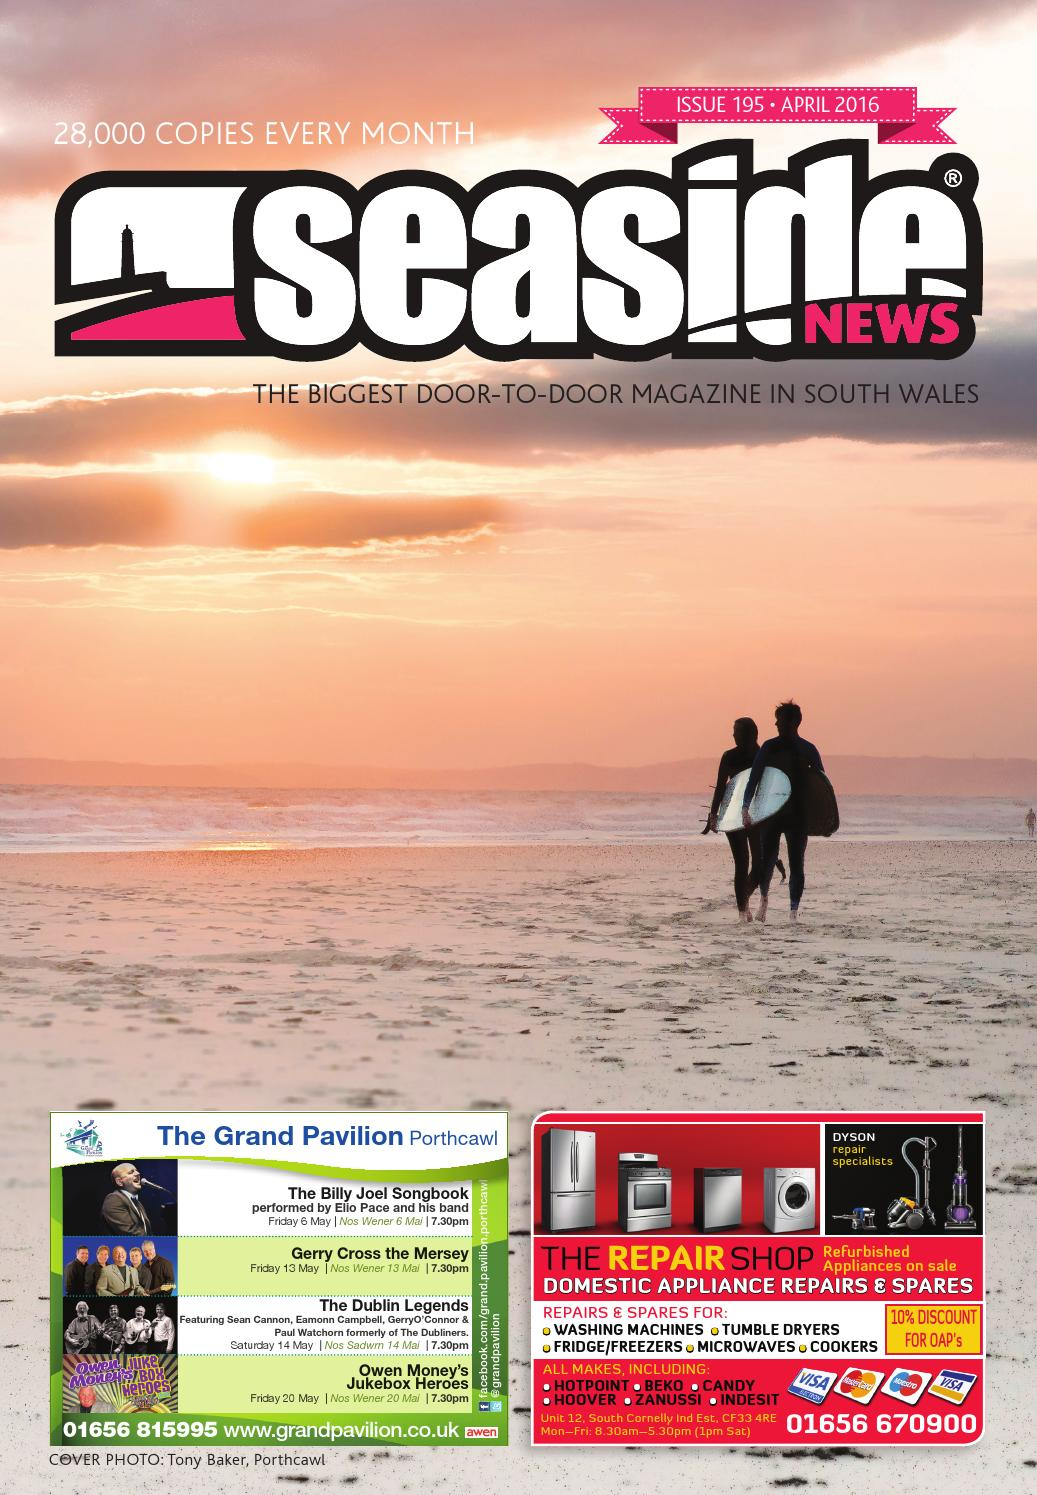 Outstanding Seaside News  April Issue By Seaside News  Issuu With Remarkable Small Cottage Gardens Besides Garden Scarifiers For Sale Furthermore L Atelier Covent Garden With Delectable Quotes Of Garden Also Garden Room Design Ideas In Addition Corner Seating Garden And Wings Garden Harlow As Well As Garden Stones Bq Additionally Garden Center Peterborough From Issuucom With   Remarkable Seaside News  April Issue By Seaside News  Issuu With Delectable Small Cottage Gardens Besides Garden Scarifiers For Sale Furthermore L Atelier Covent Garden And Outstanding Quotes Of Garden Also Garden Room Design Ideas In Addition Corner Seating Garden From Issuucom